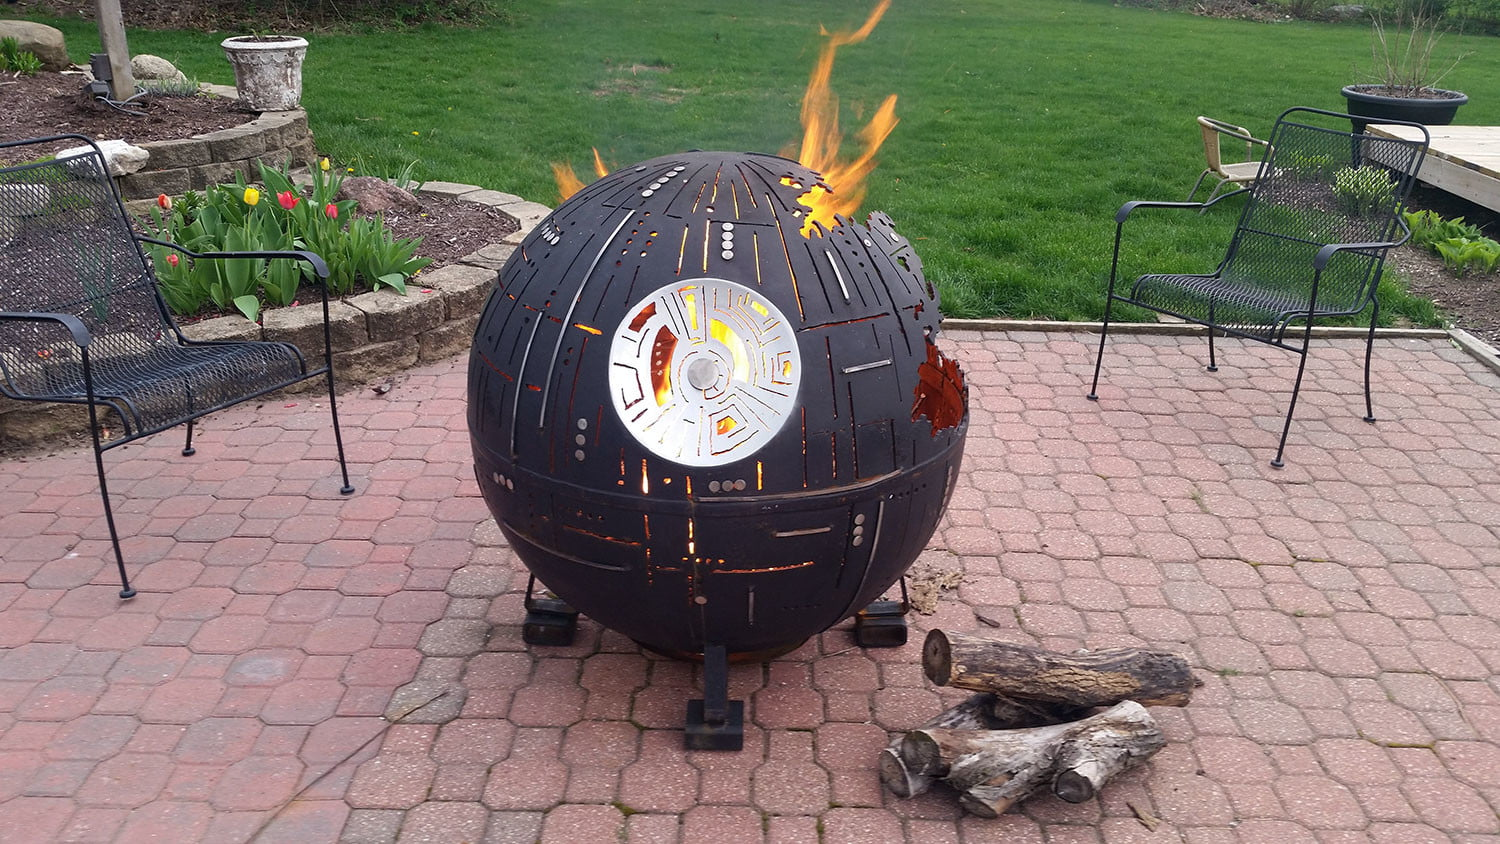 Star Wars Death Star Fire Pit Part - 15: Witness The Fire Power Of This Fully Armed And Operational Death Star Fire  Pit